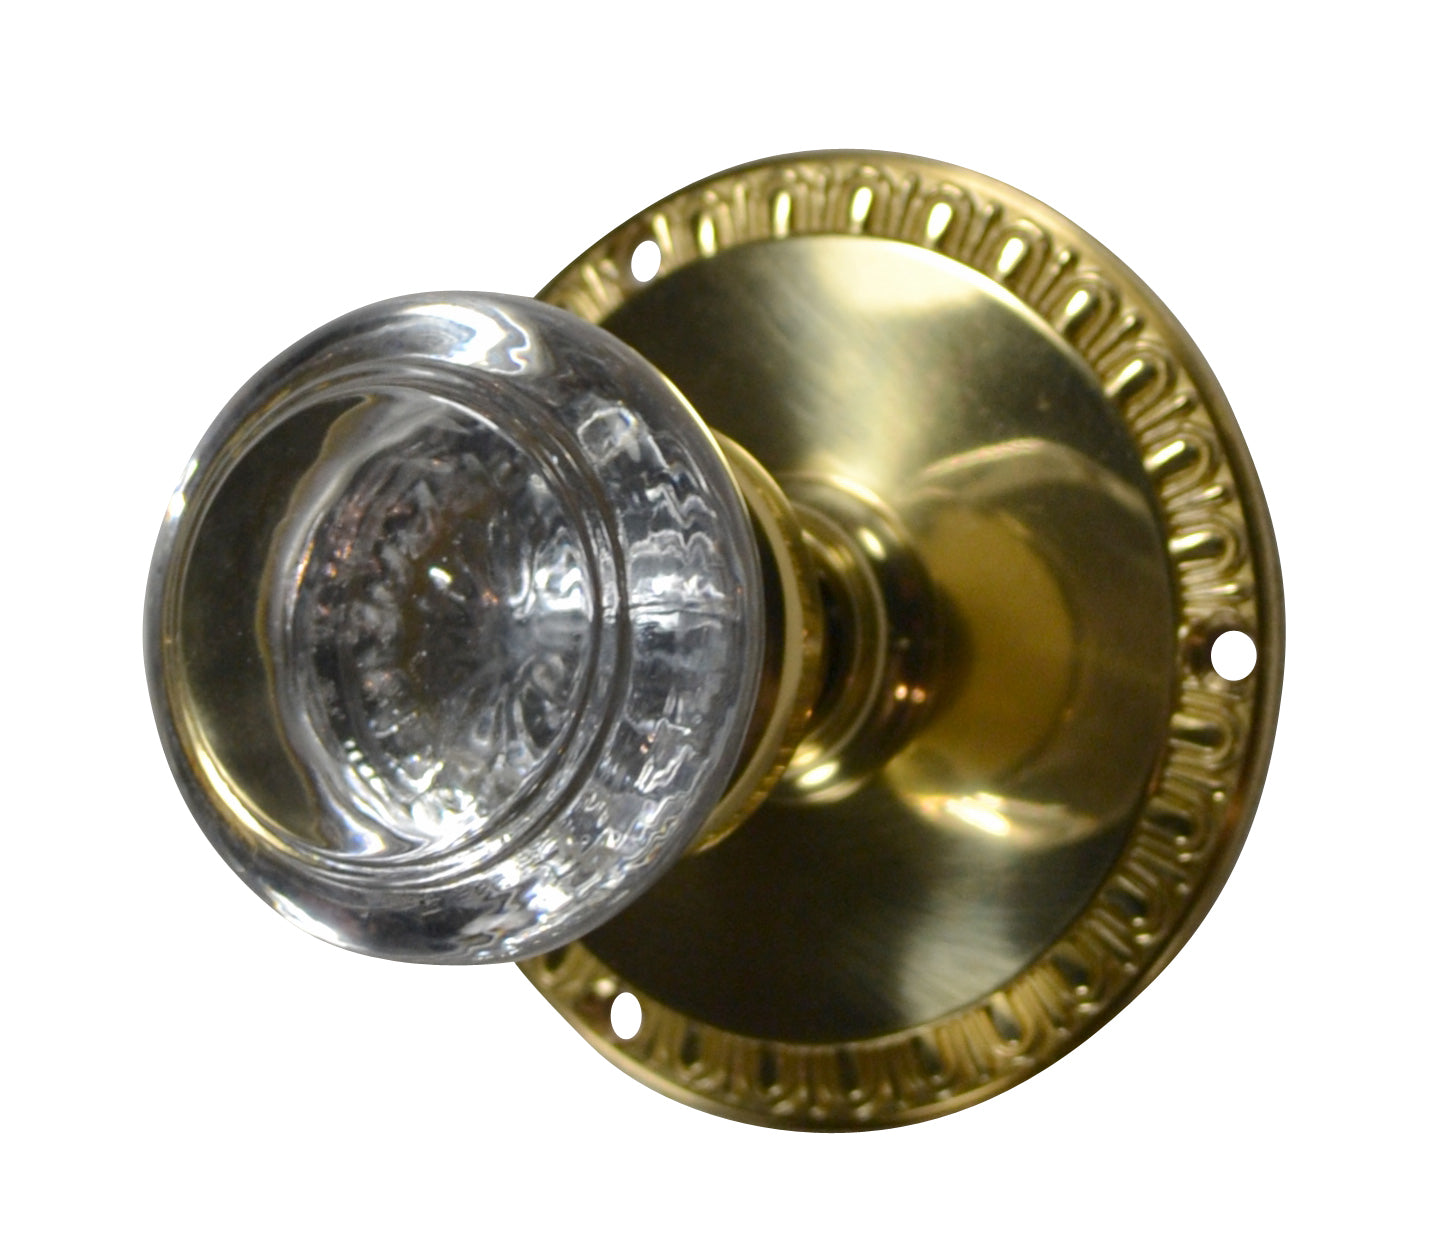 Savannah Crystal Knob with Egg & Dart Rosette